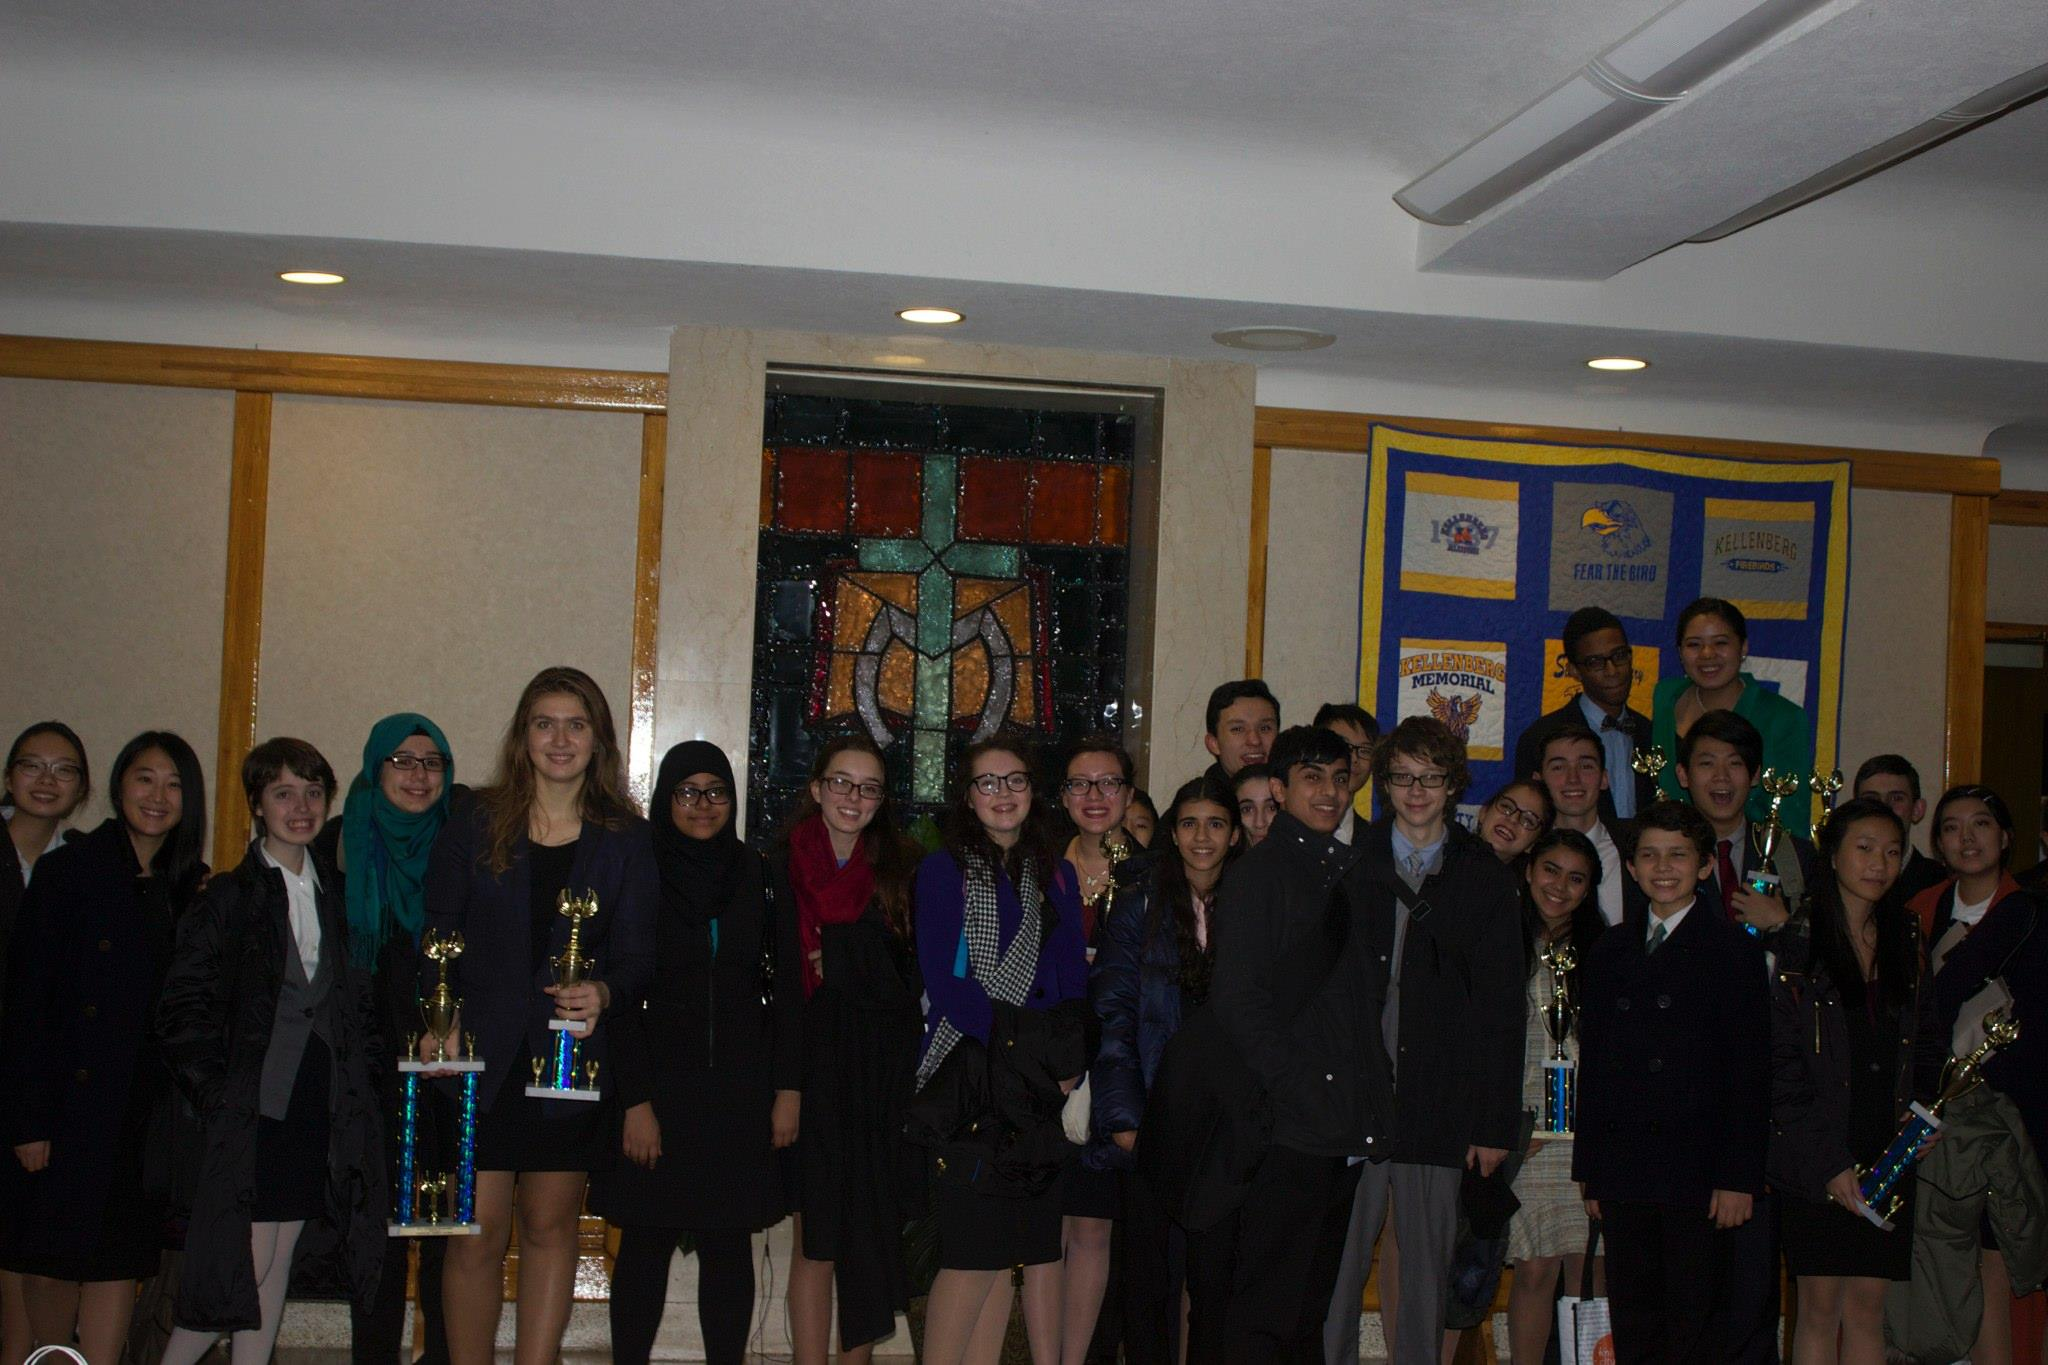 Speech and Congress at the Chaminade Invitational